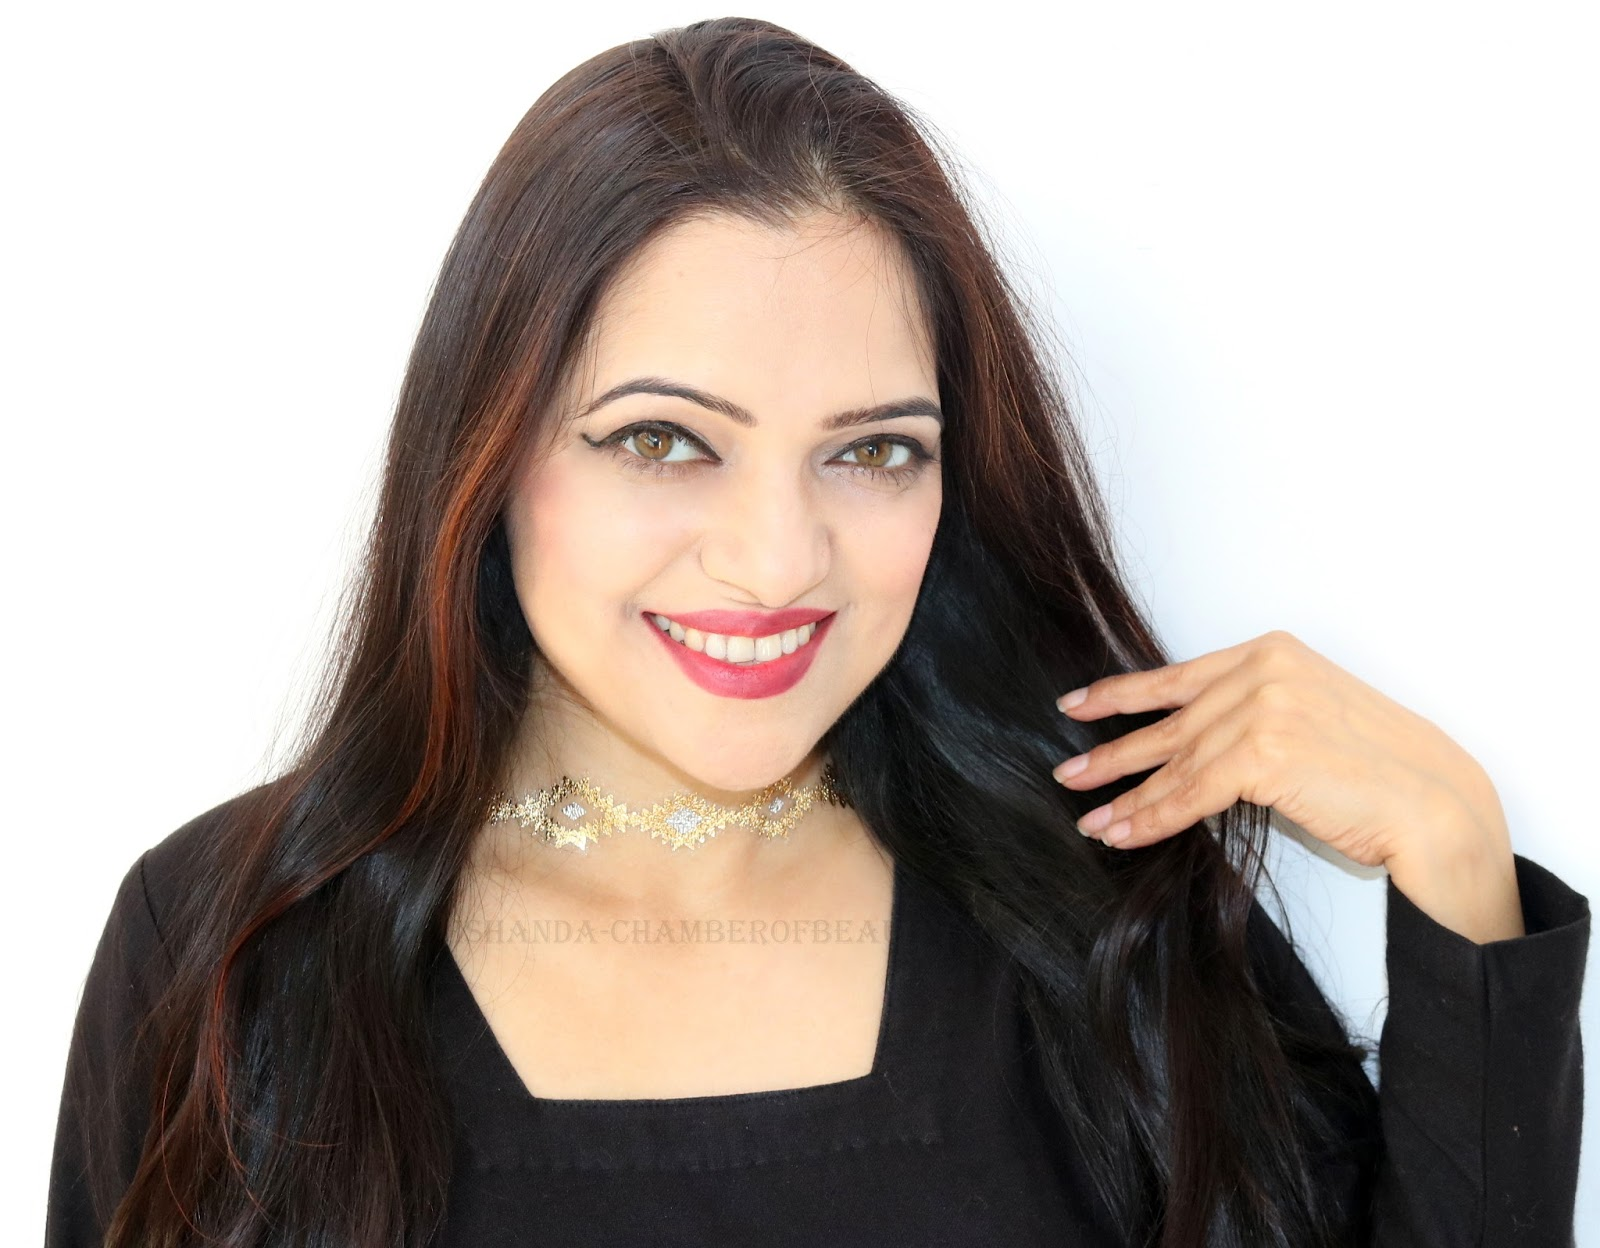 www.rakhshanda-chamberofbeauty.com/Fall Makeup Look - Burgundy Lips with Natural Eye Makeup/Indian beauty blogger